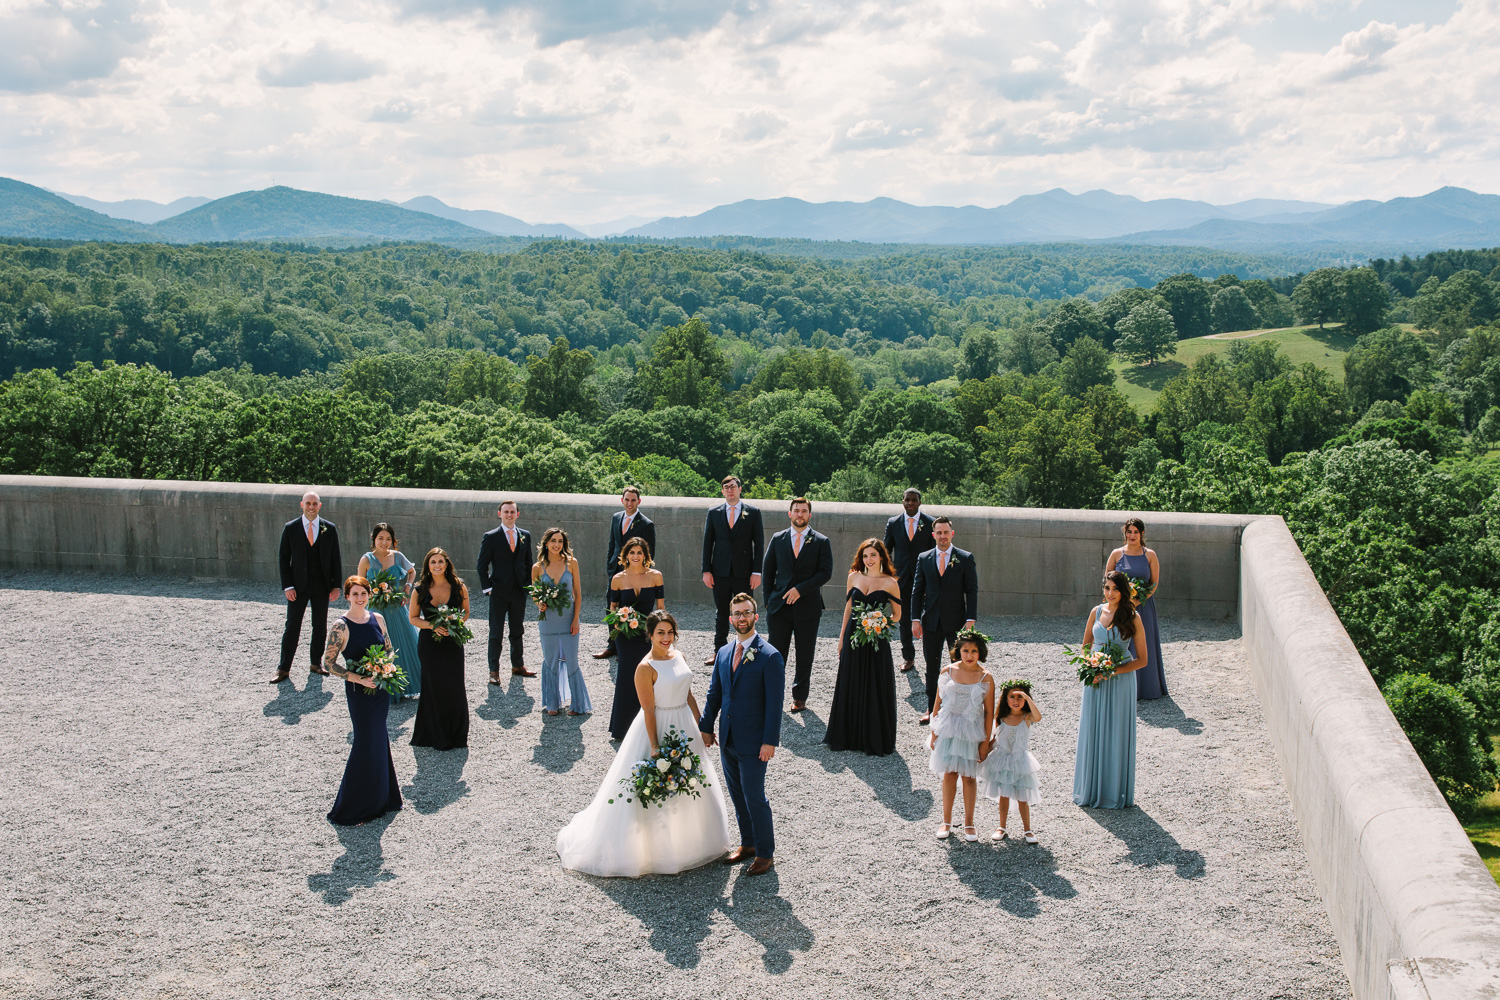 Wedding Party at The Biltmore Estate in Asheville